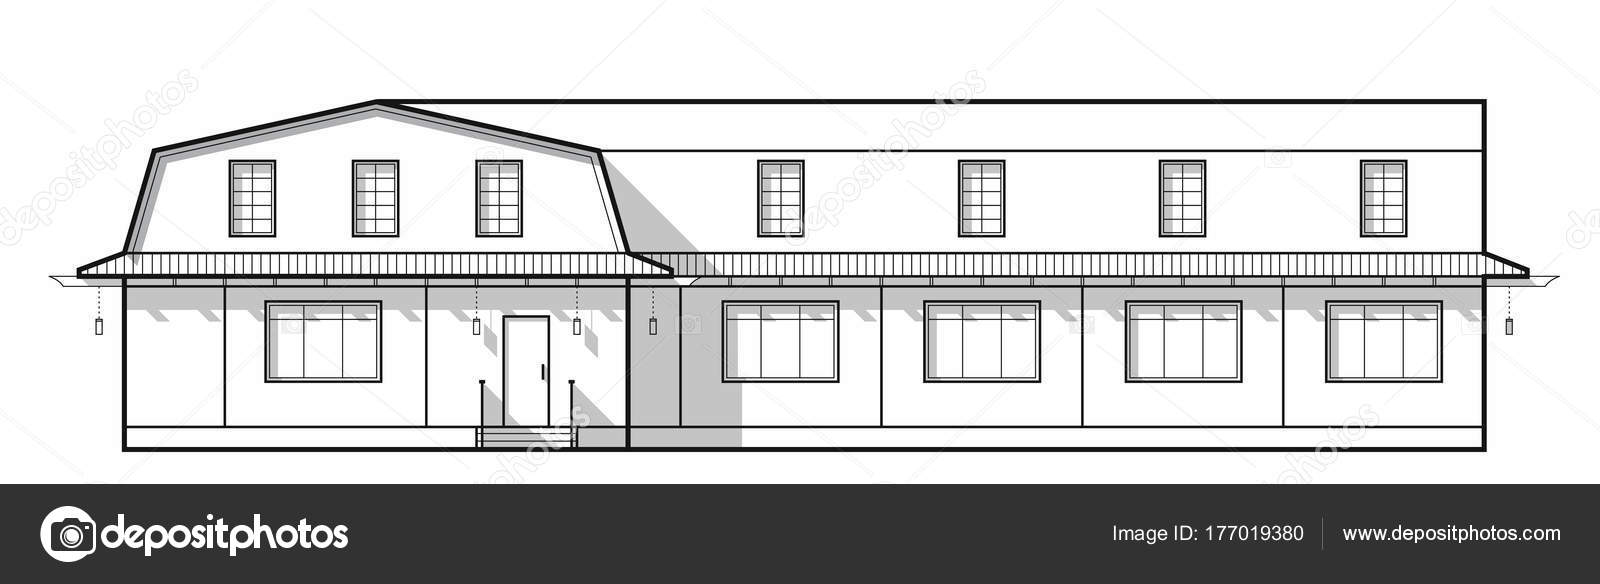 Building Small Hotels Front House Front View Thin Line Style — Stock on house construction, house layout design, house template, house model design, house drawing, house painting design, house art design, house design blueprint, house perspective design, house autocad, house architecture design, house graphic design, house light design, house green design, sketchup house design, green building design, house studio design, product page design, house study design, house plans with furniture layouts,